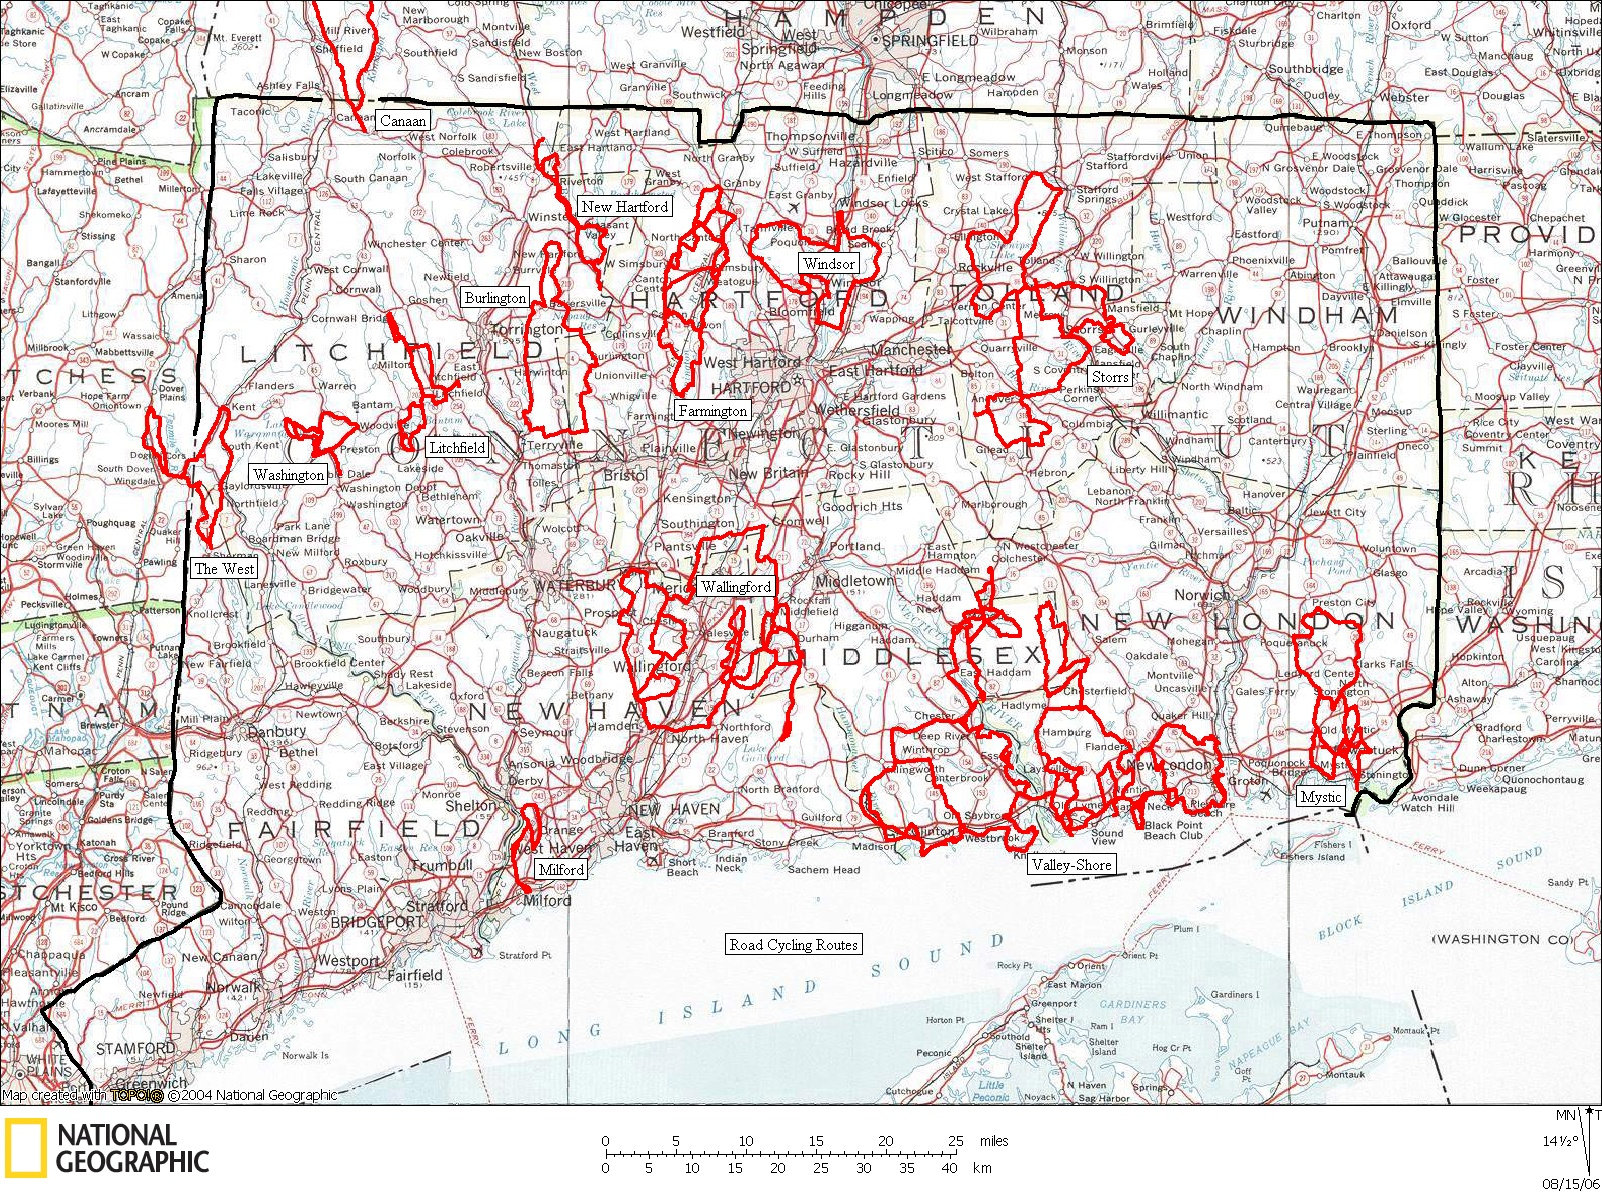 Connecticut, Road, Cycling, Bicycling, Bike, Ride, Routes, Map